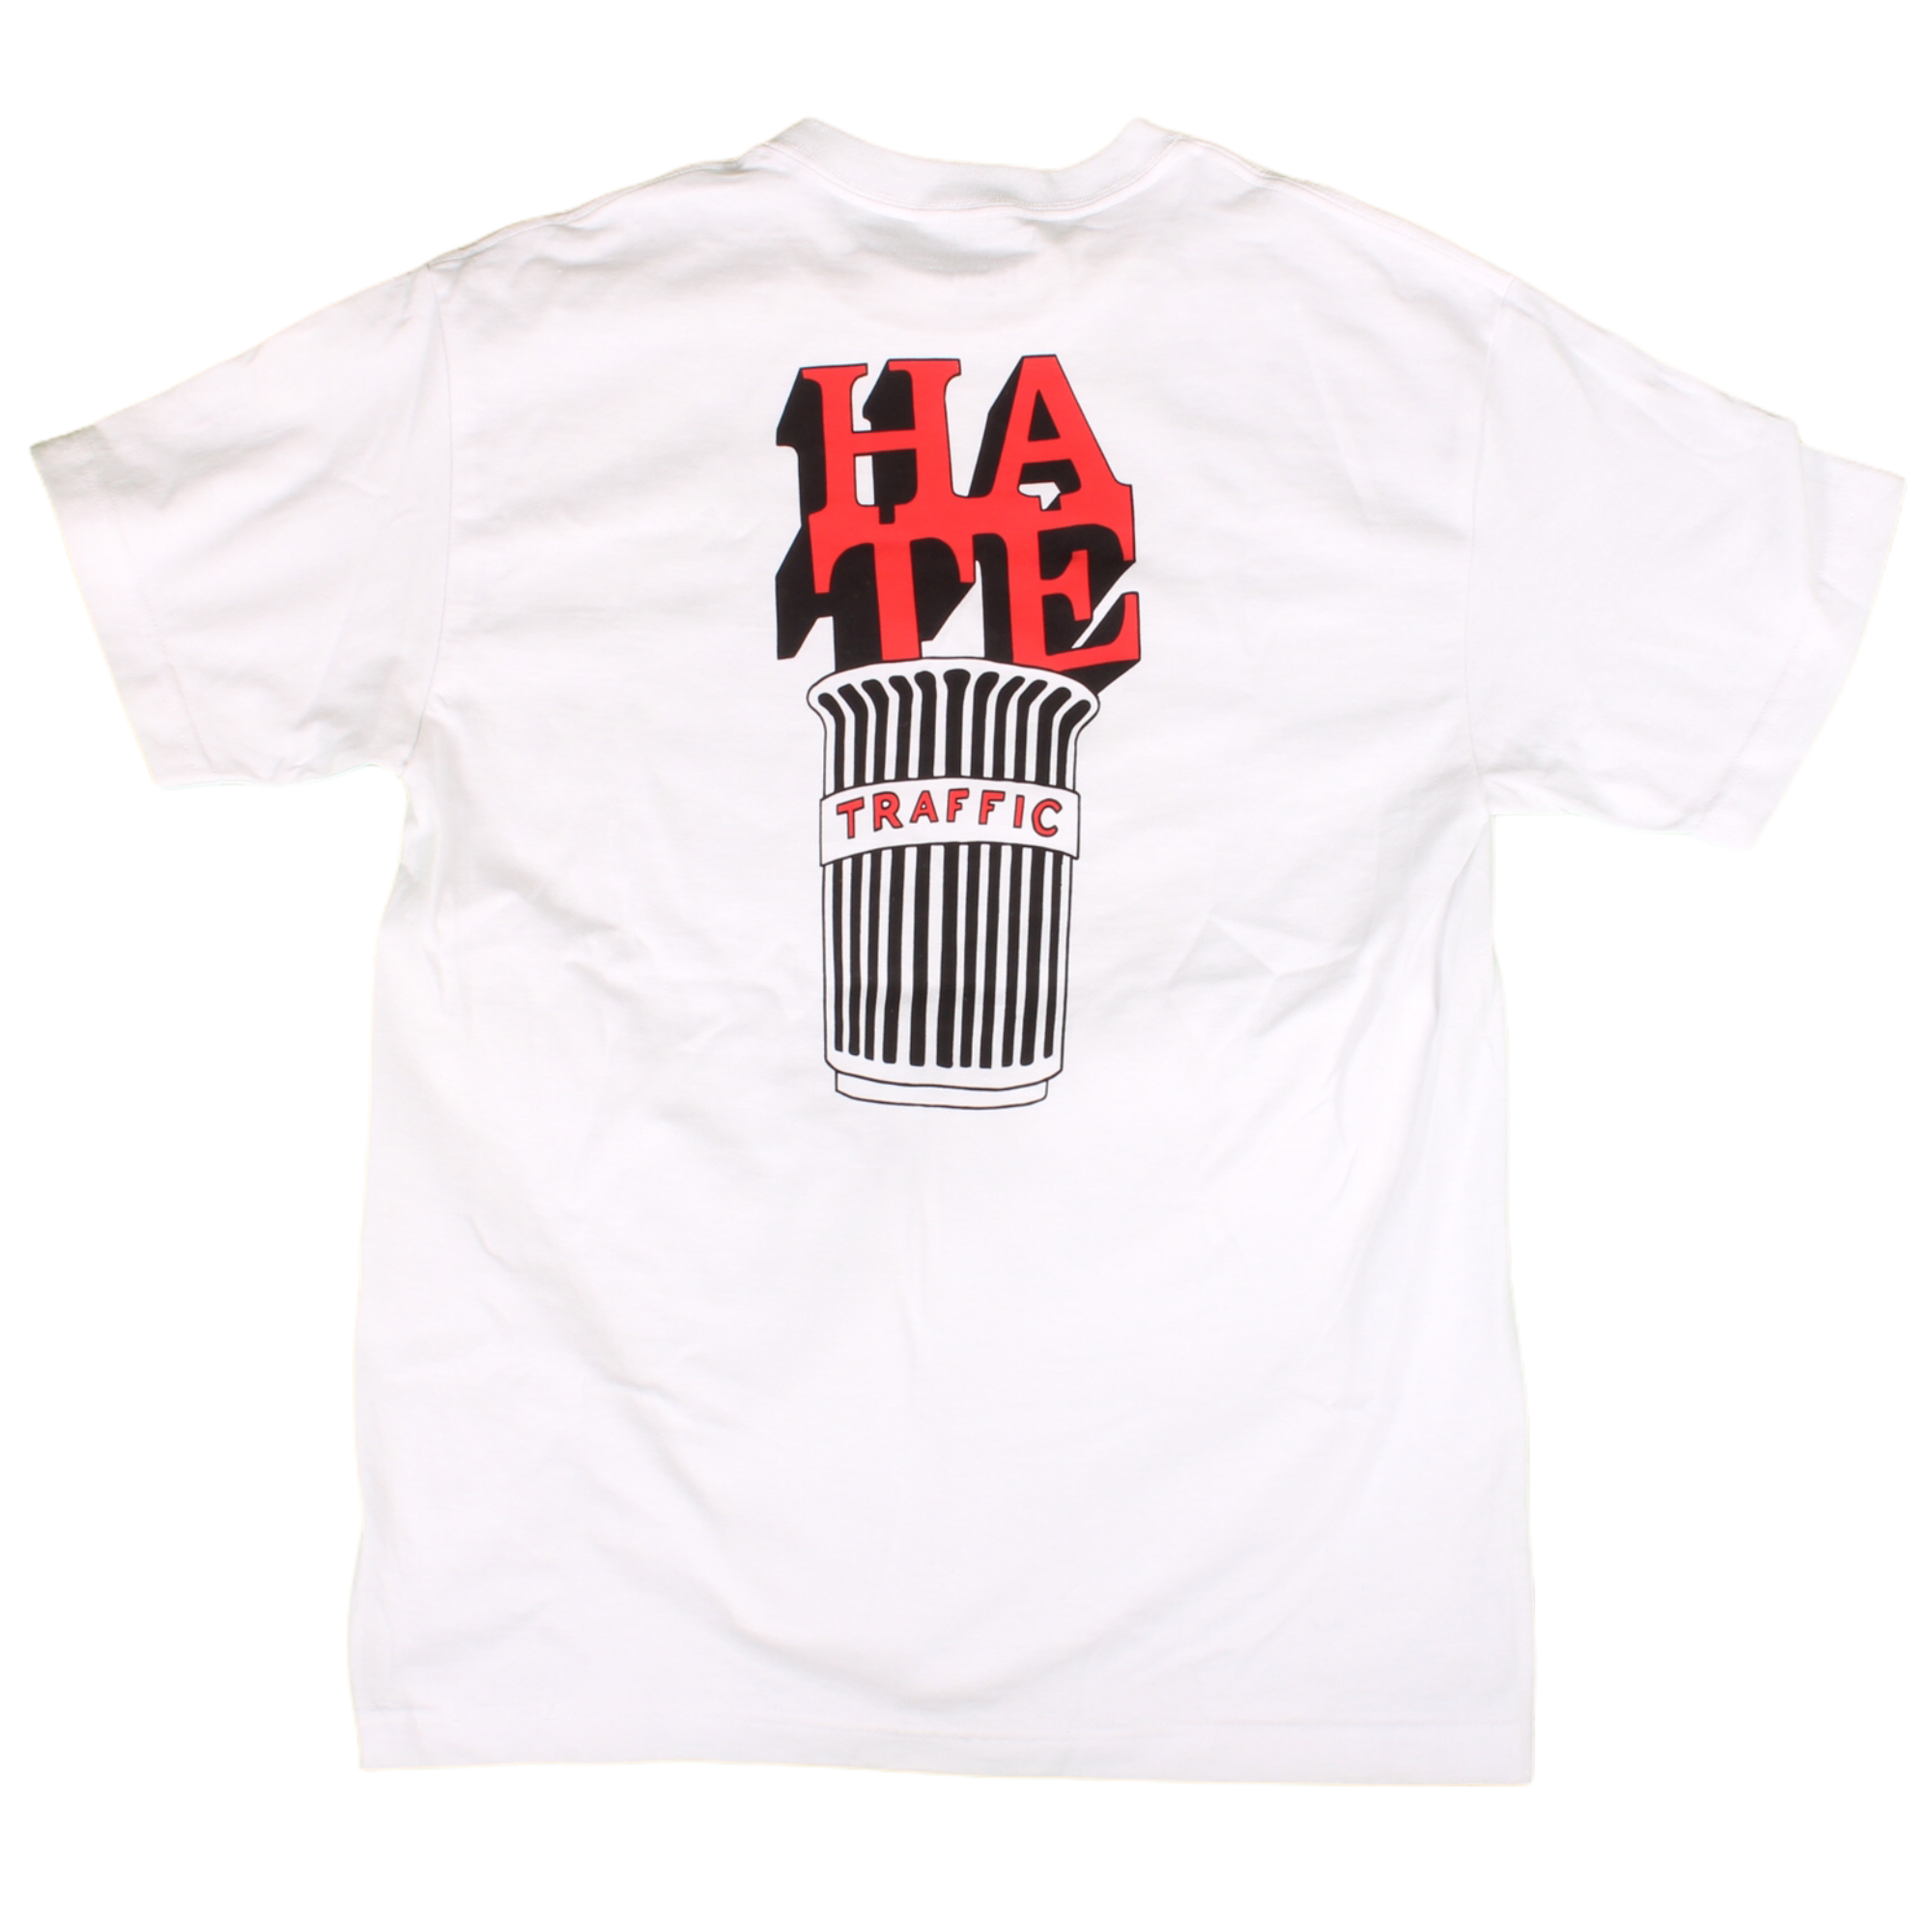 Traffic Trash Tee White